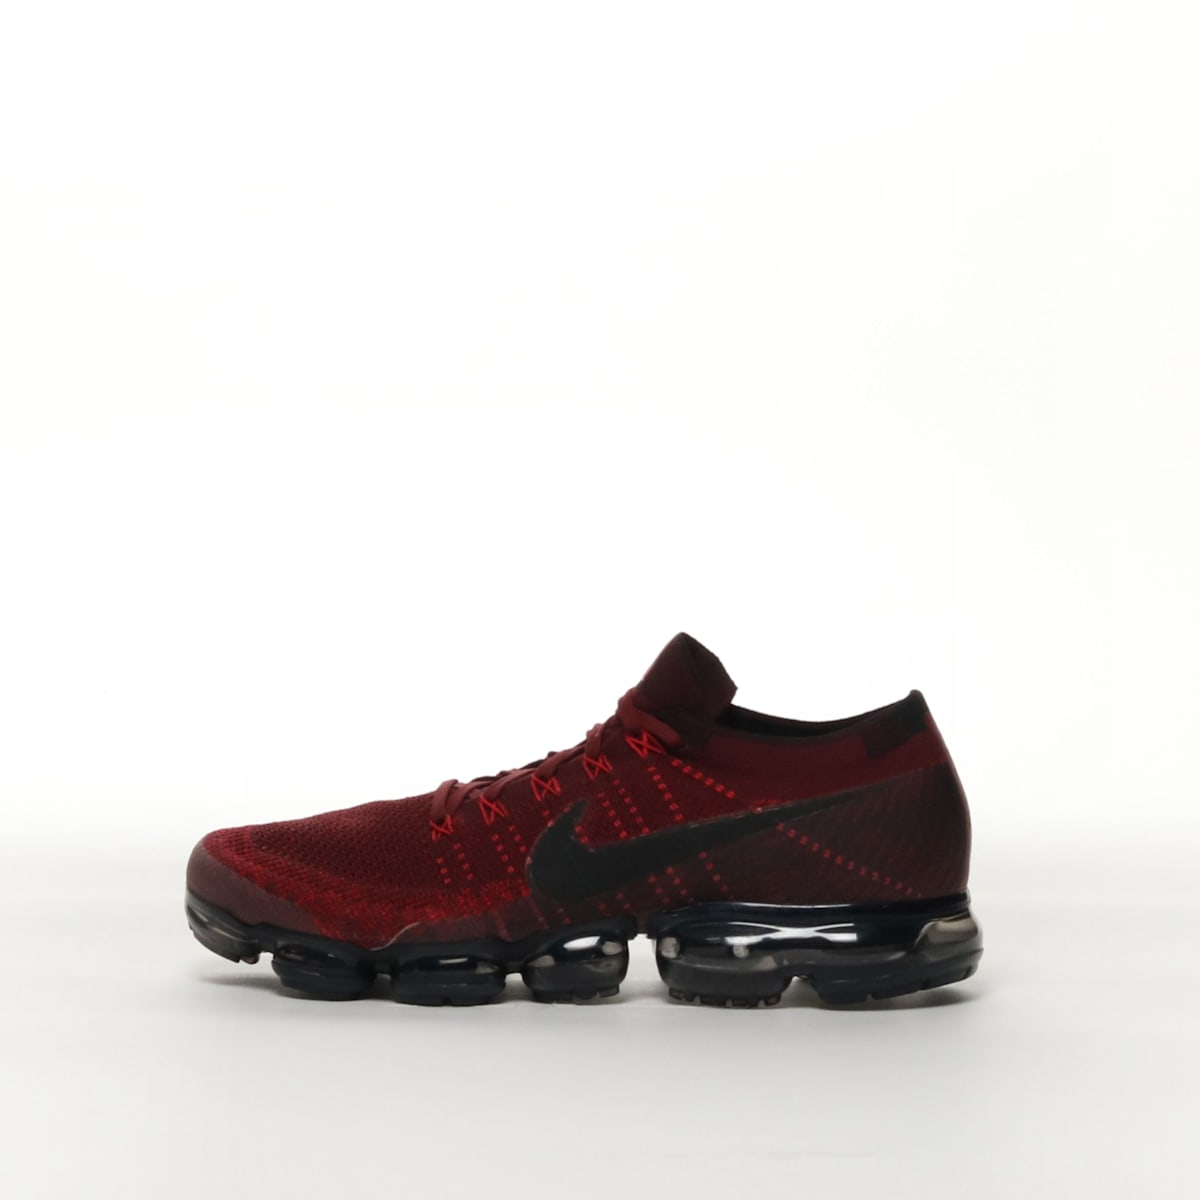 huge discount f649f e6822 Nike Air VaporMax Flyknit - DARK TEAM RED/UNIVERSITY RED/TOTAL ...